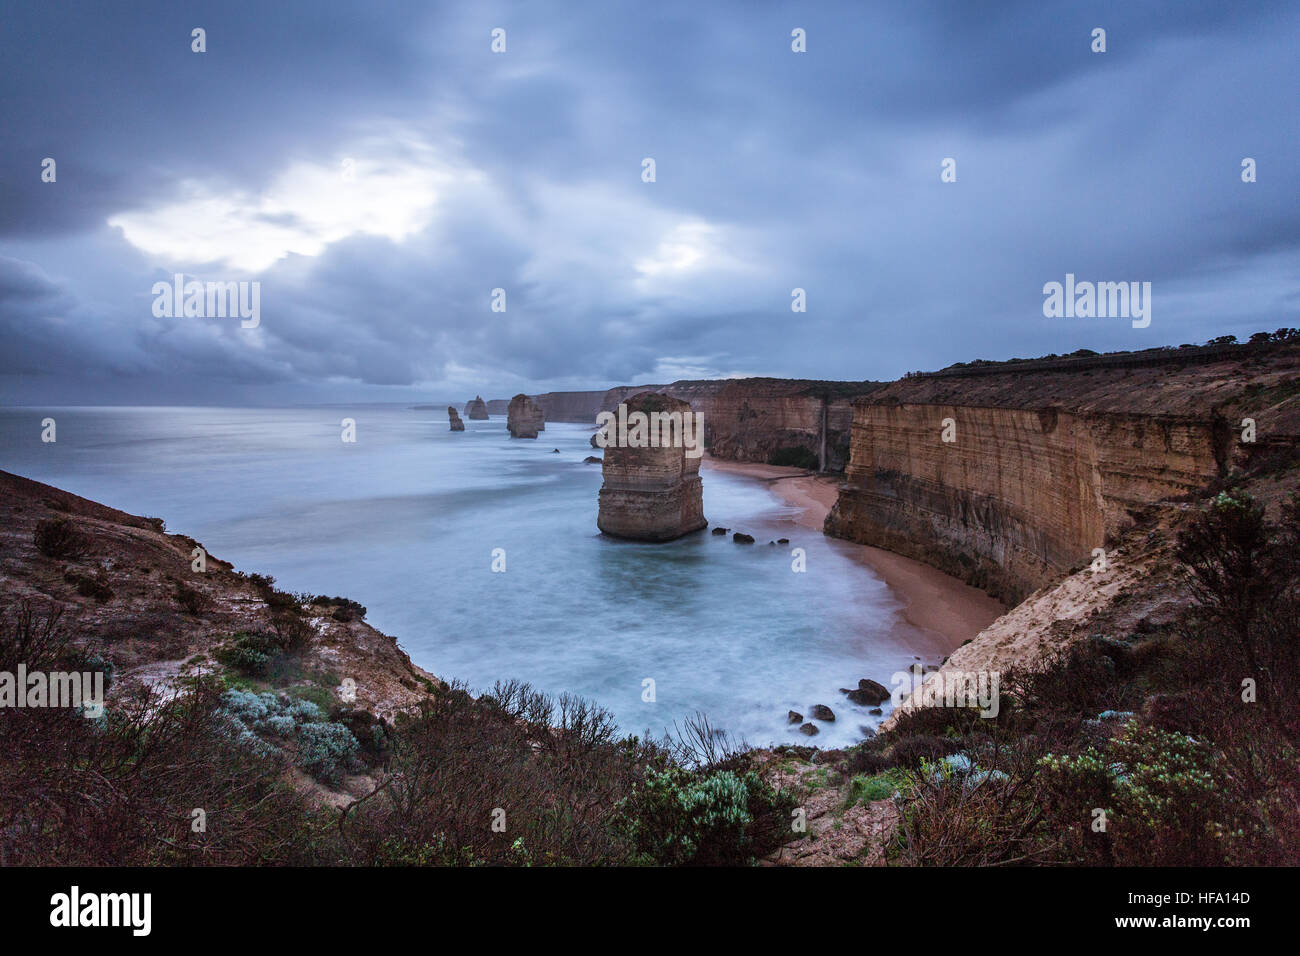 12 Apostles, Great Ocean Road, Australia - Stock Image